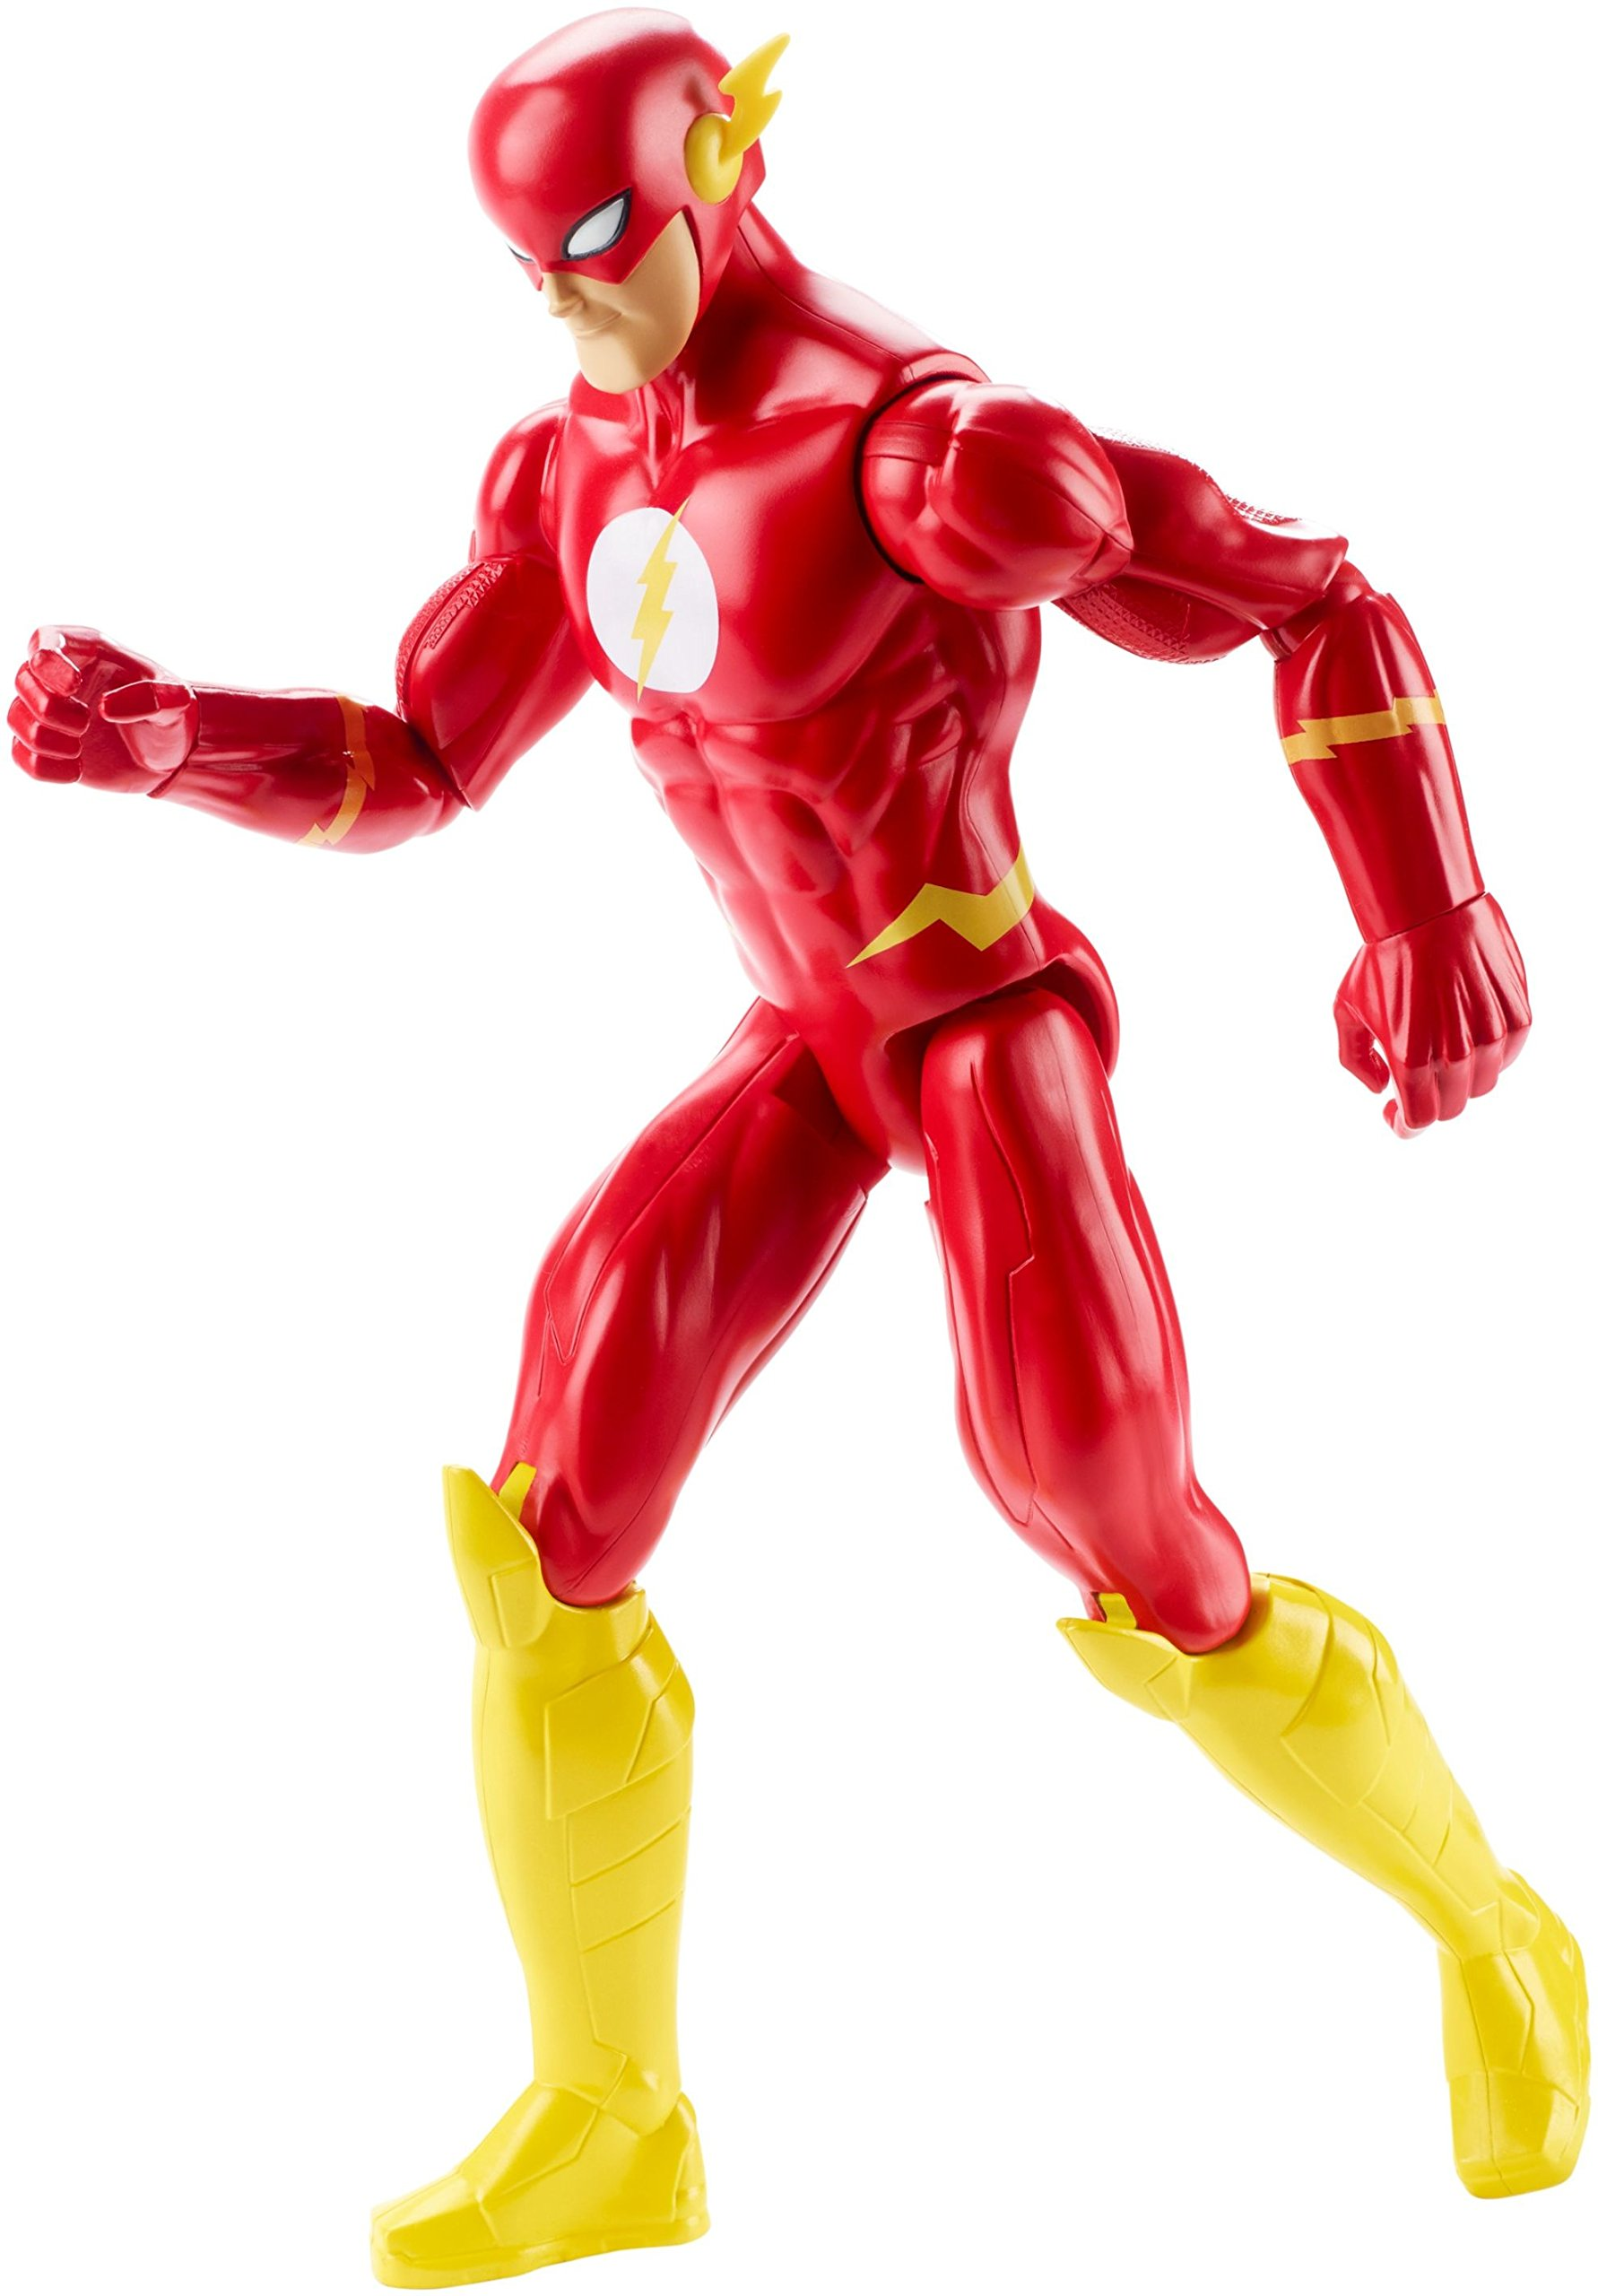 Justice League Action The Flash Figure, 12''